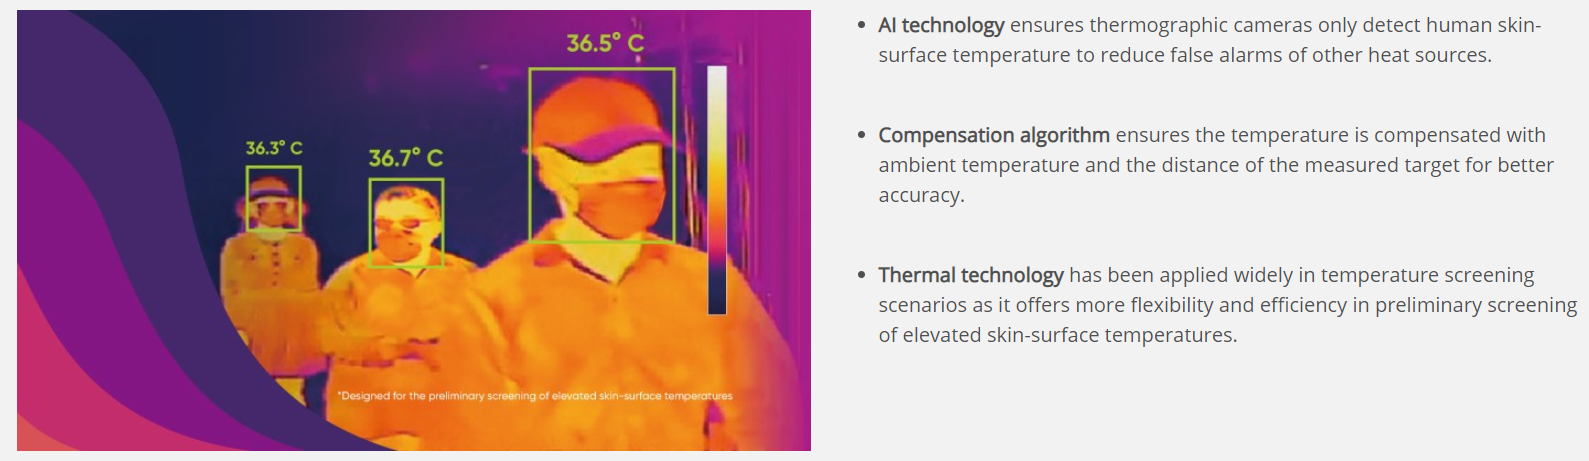 Advantages of Thermal Technology